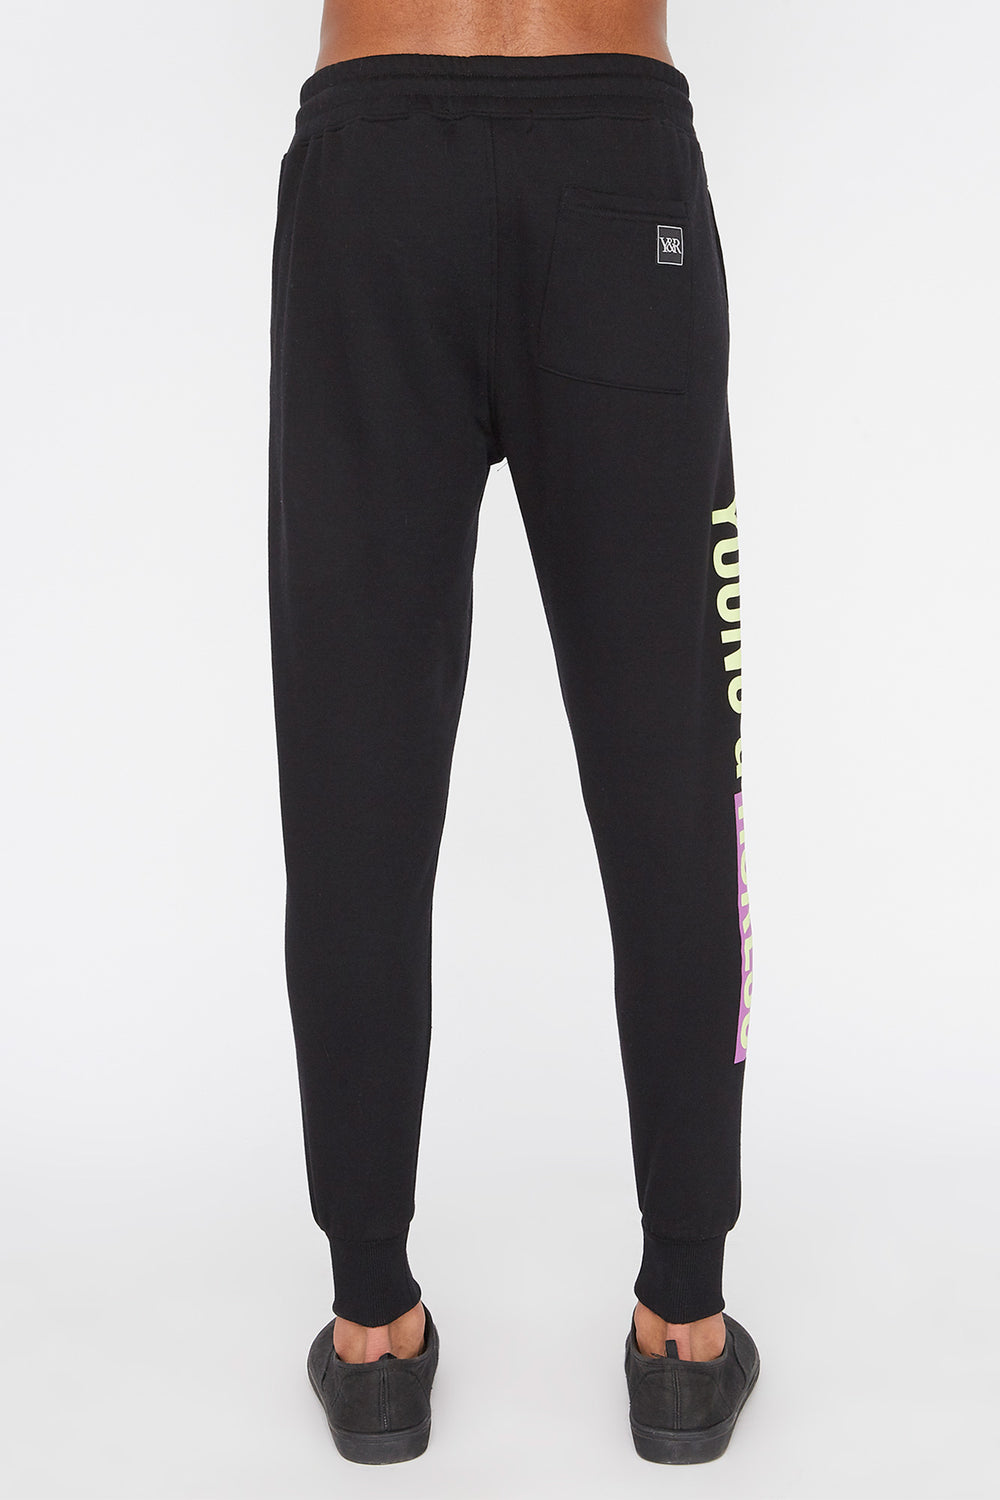 Young & Reckless Mens Neon Jogger Black